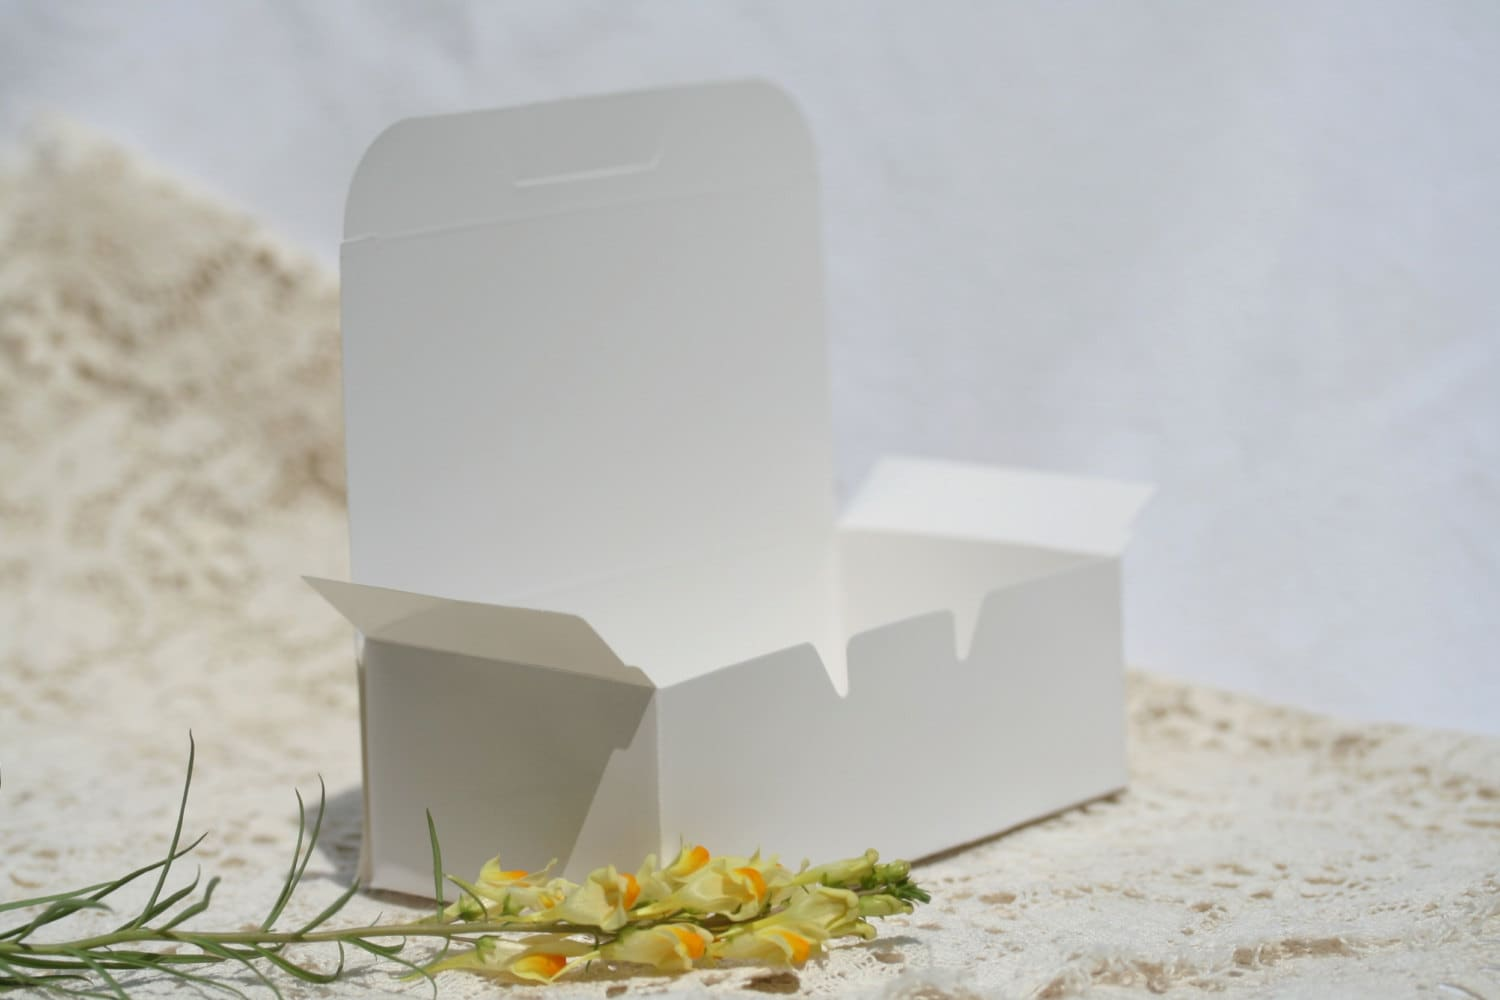 50 Cake Boxes Favor Boxes 5.5 by 1.75 Inches Wedding Cake Box